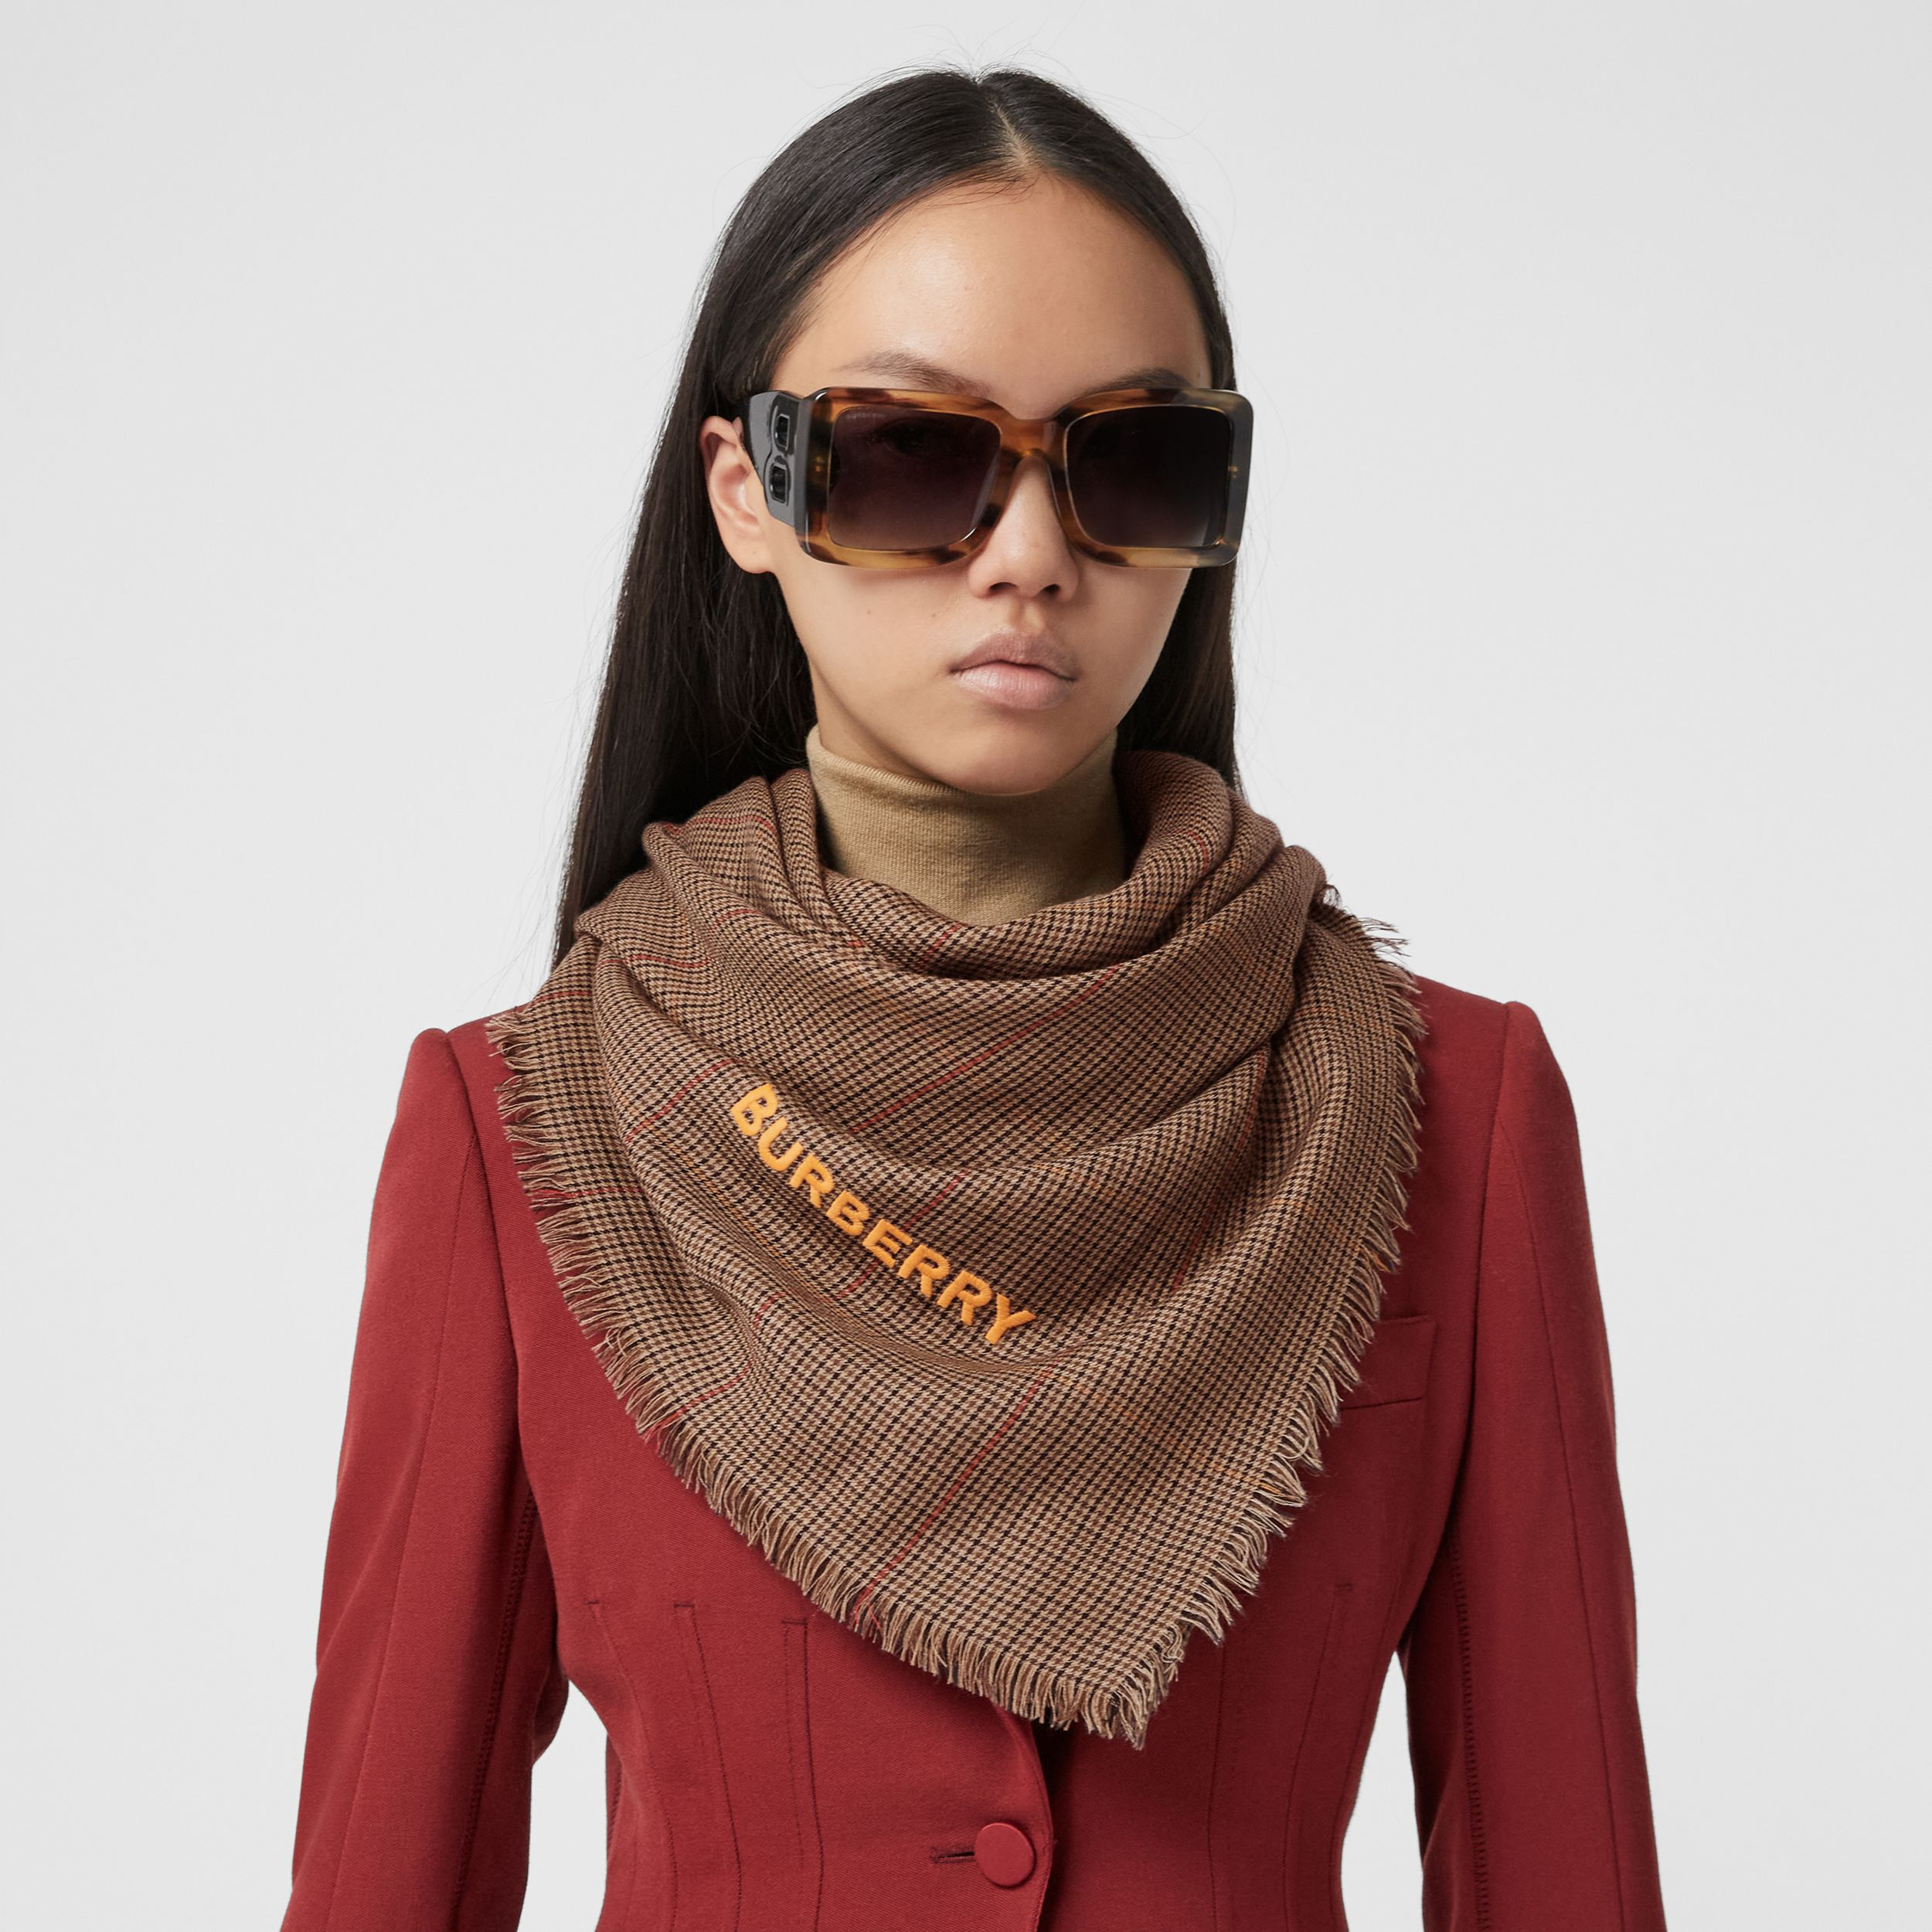 Horseferry Print Houndstooth Cashmere Scarf in Dark Mocha | Burberry - 3